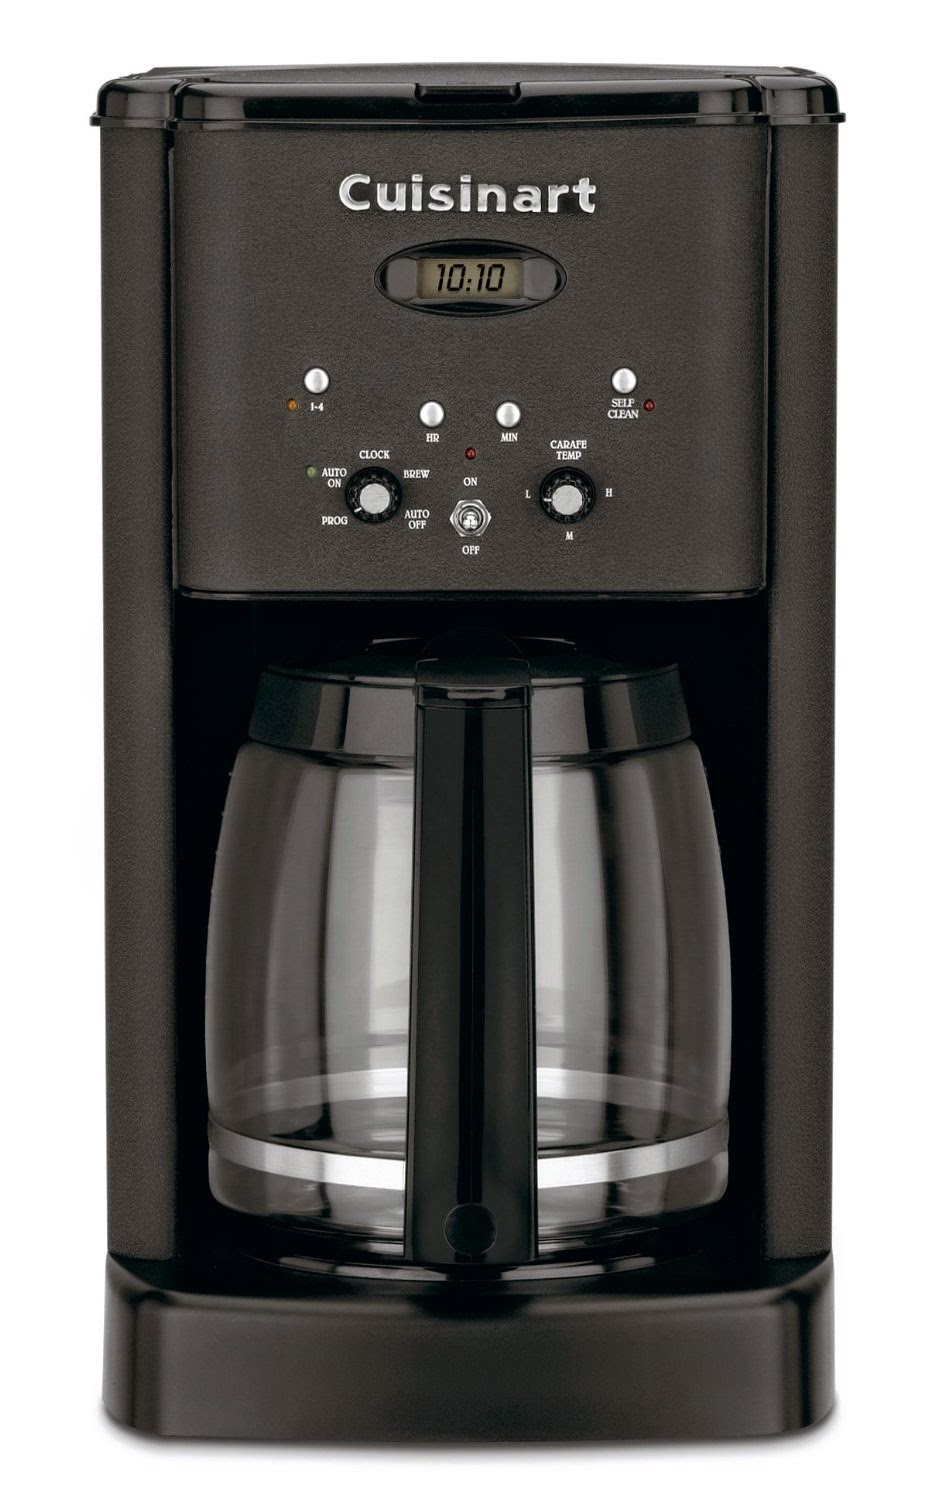 Cuisinart Coffee Maker Shuts Off After Brewing : Home, Garden & More...: Cuisinart DCC-1200 Brew Central 12-Cup Programmable Coffeemaker, Review ...